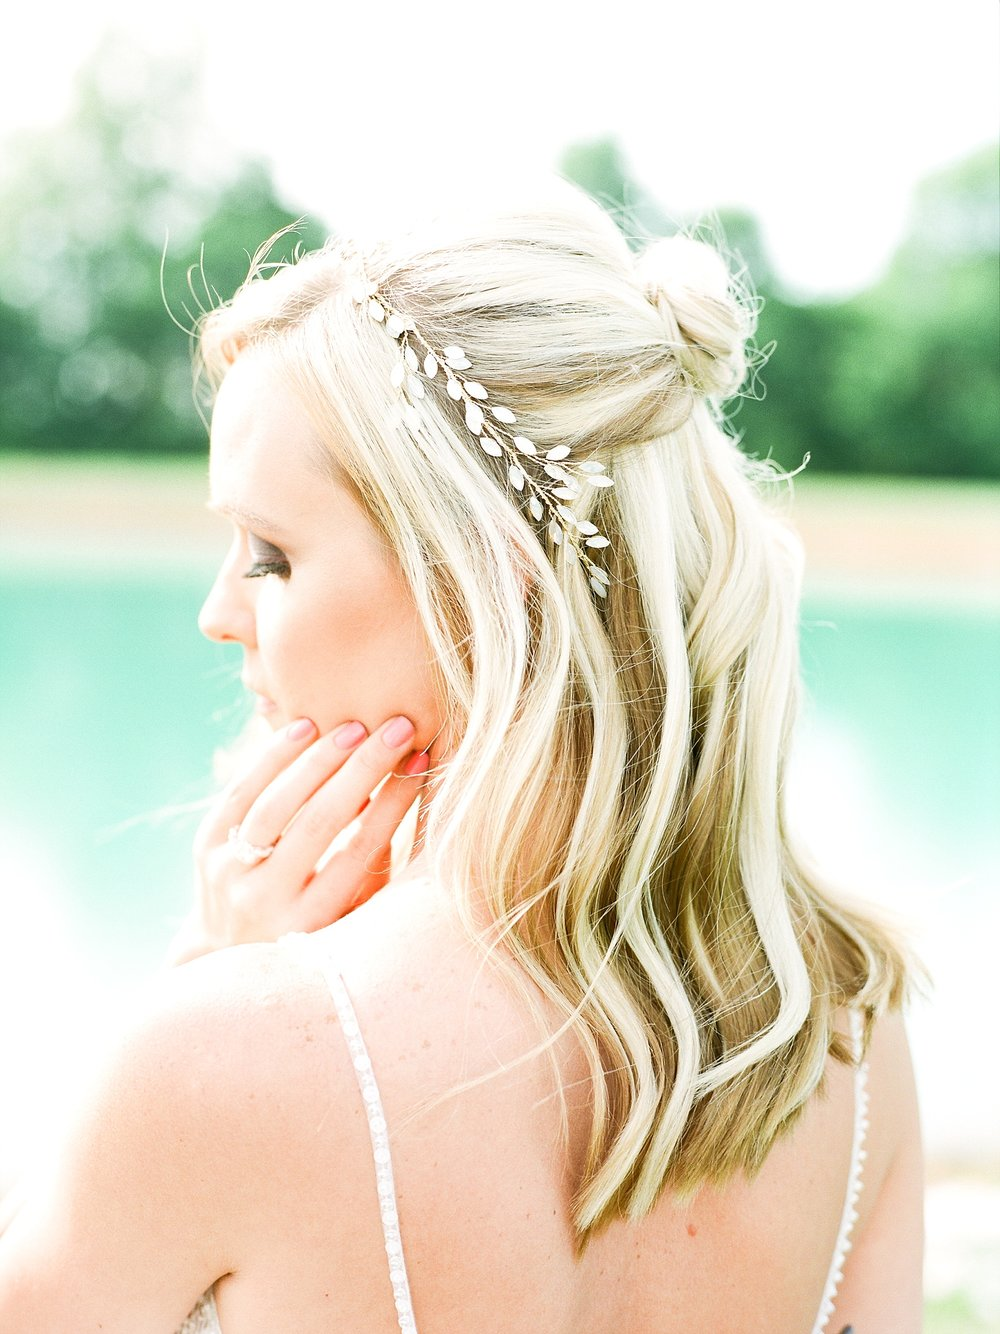 Textural Organic Wedding in All White Venue by Kelsi Kliethermes Wedding Photographer - Missouri, Midwest, and Destinations_0050.jpg